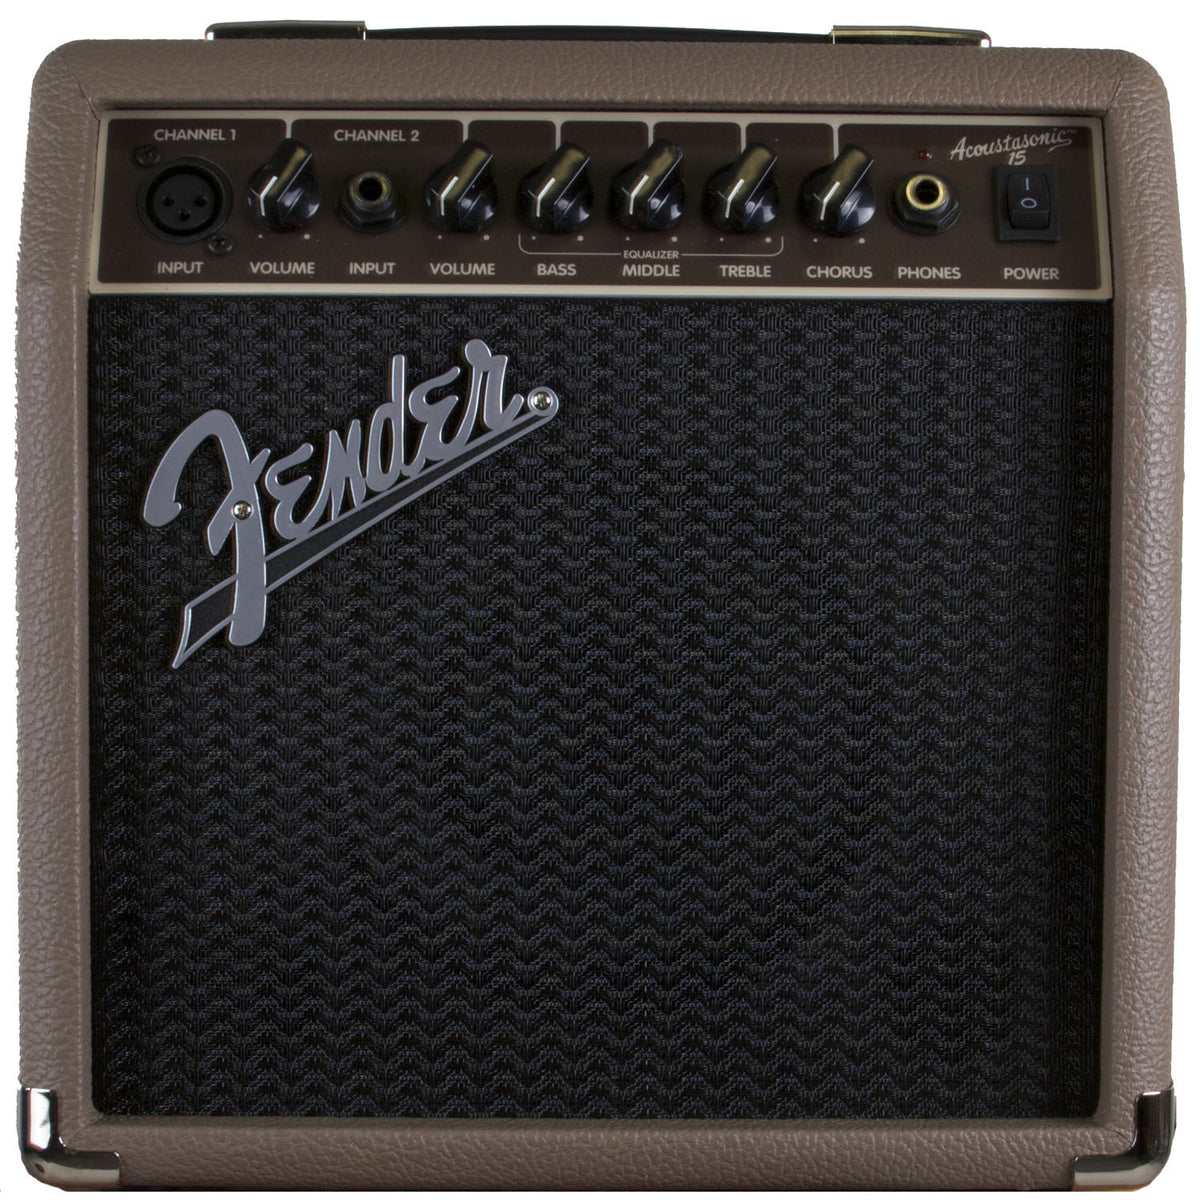 Fender Amp Acoustasonic 15 Brown 15W 1x6 - Garrett Park Guitars  - 2